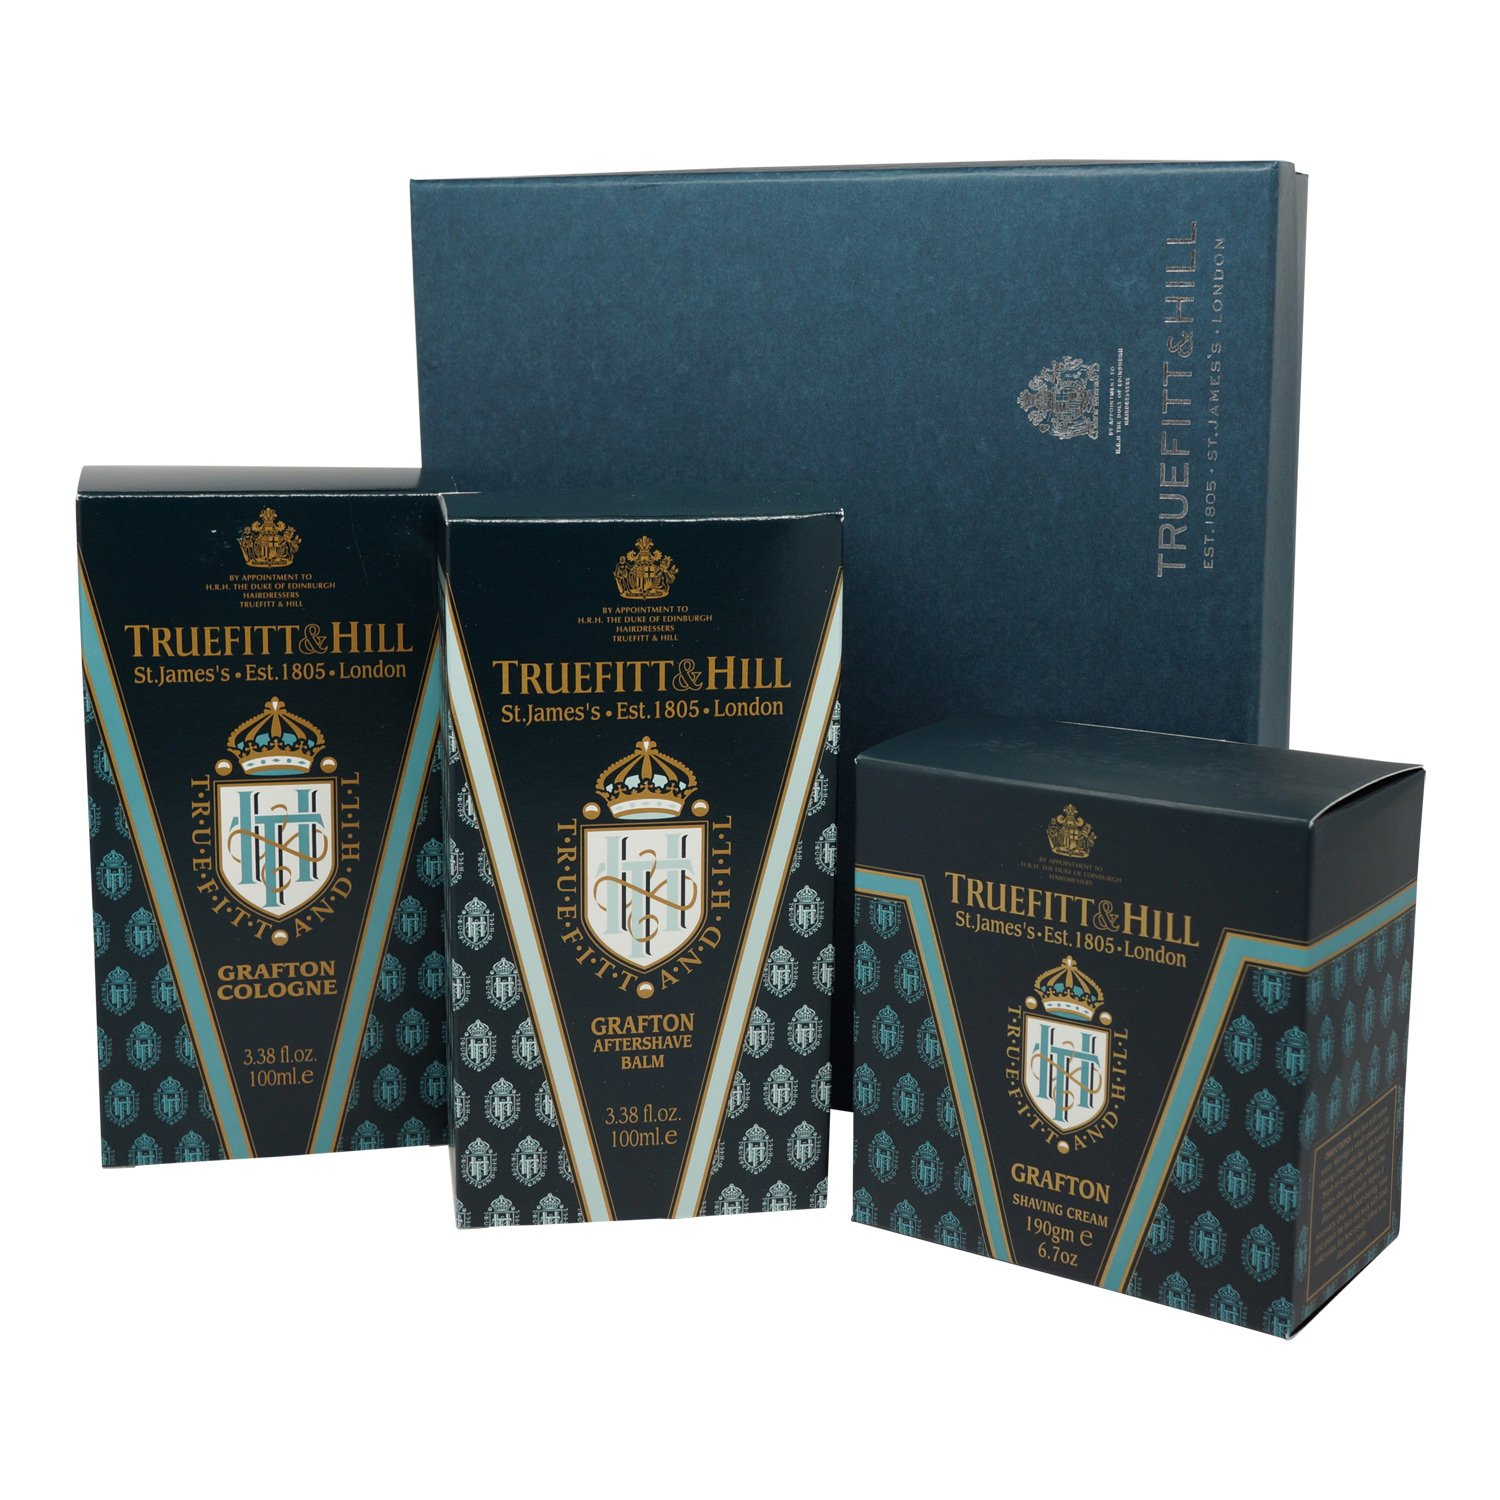 Truefitt & Hill Classic Gift Set (Grafton)